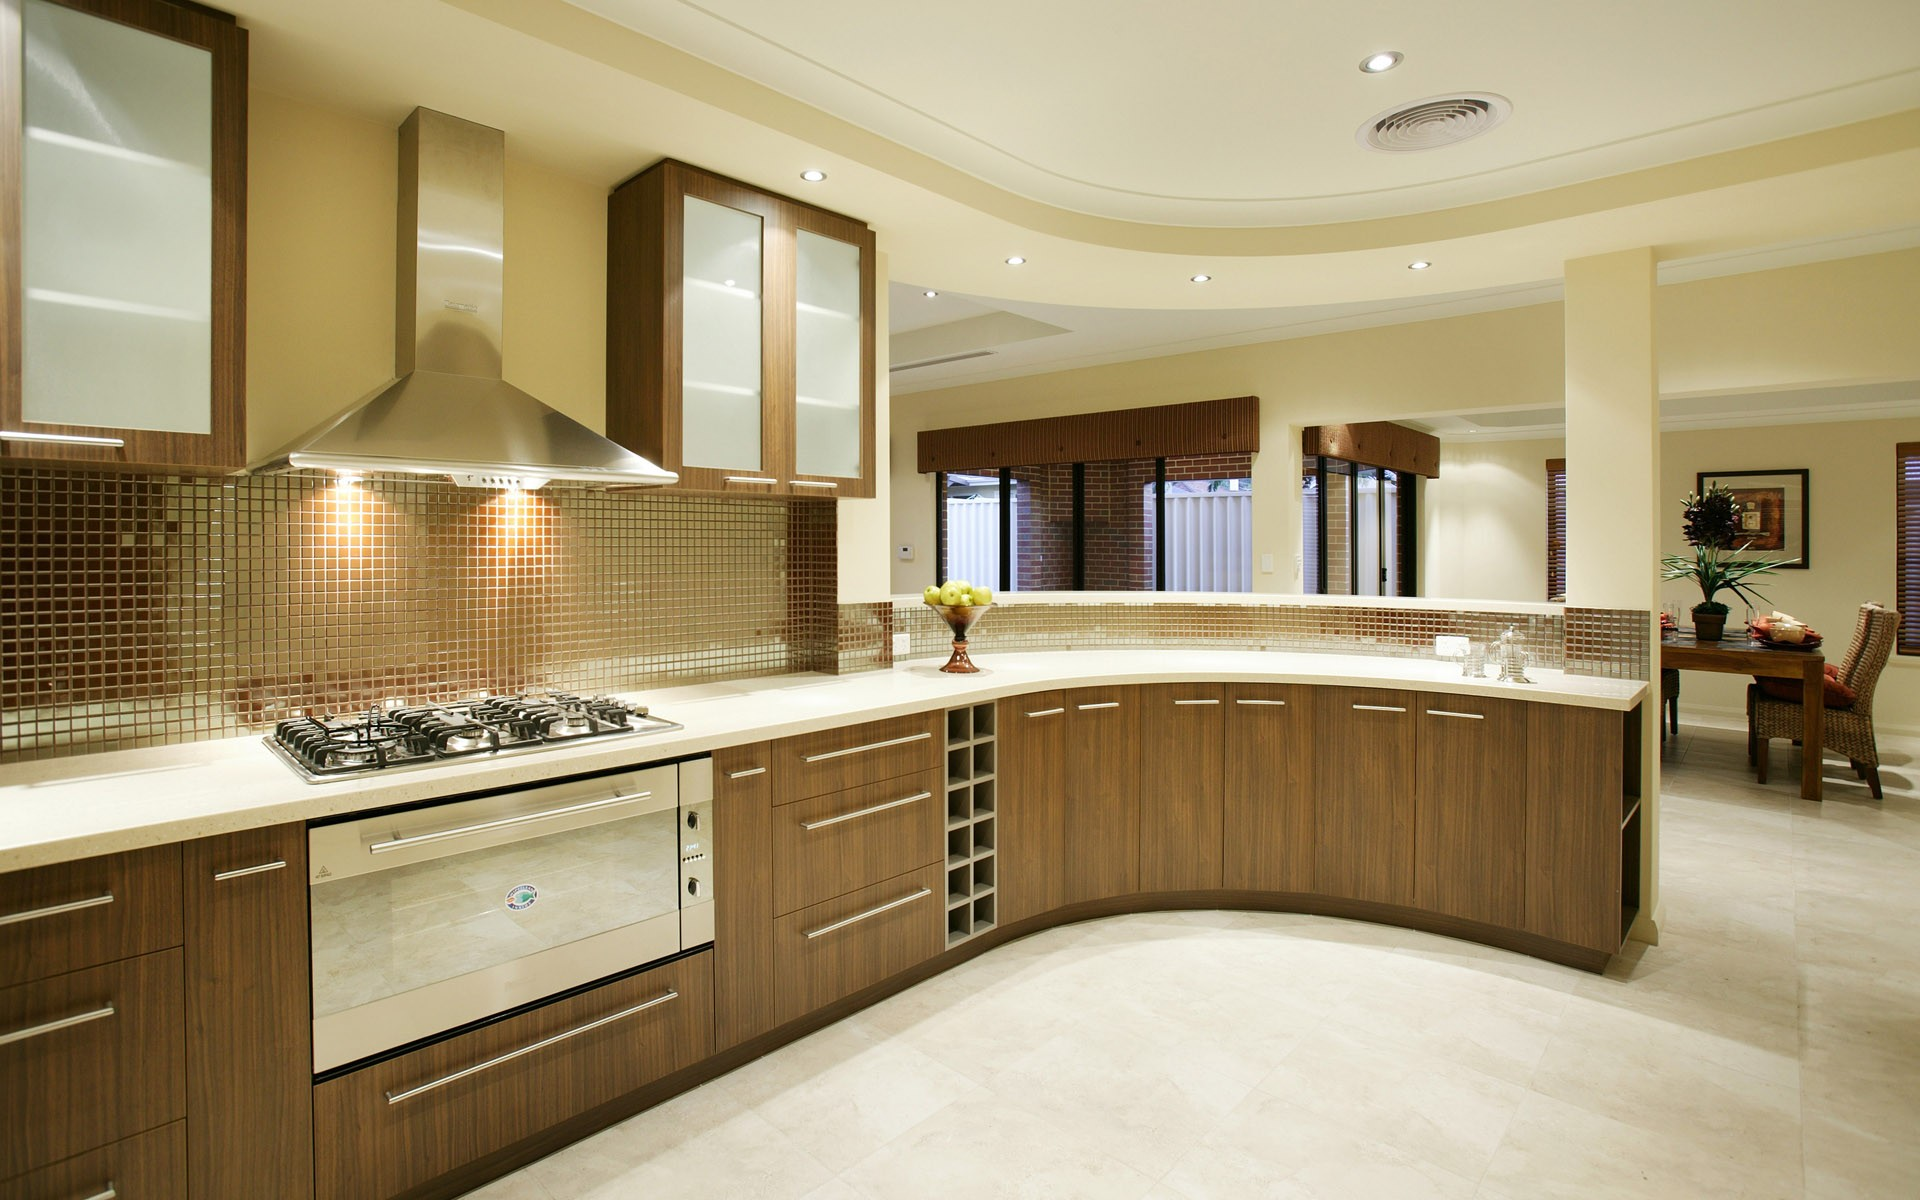 kitchen-interior-design.jpg